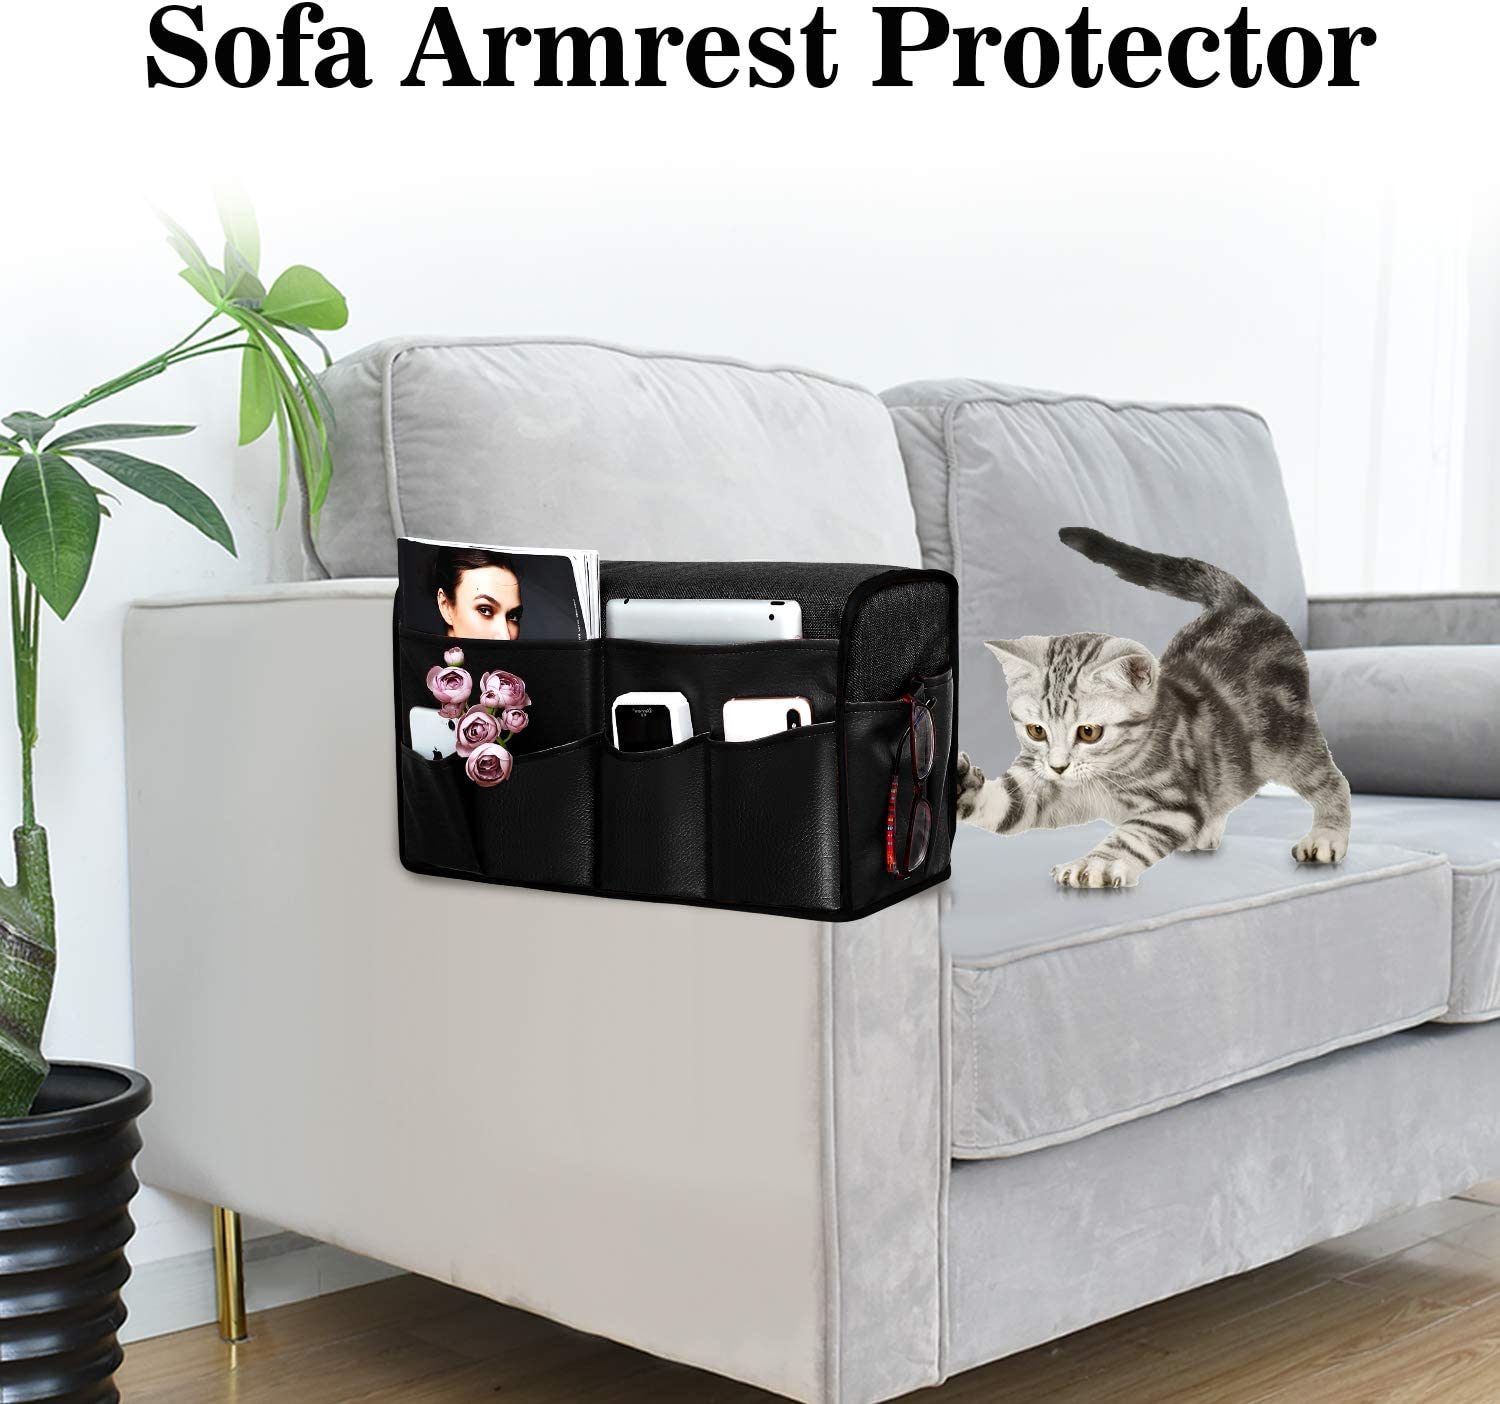 Black Phone iPad Super Durable Recliner Arm Protector for Pets Joywell Leather Anti-Slip Armrest Covers with 8 Pockets for Sofa Couch Set of 2 Armchair Caddy /& Organizer for Remote Control